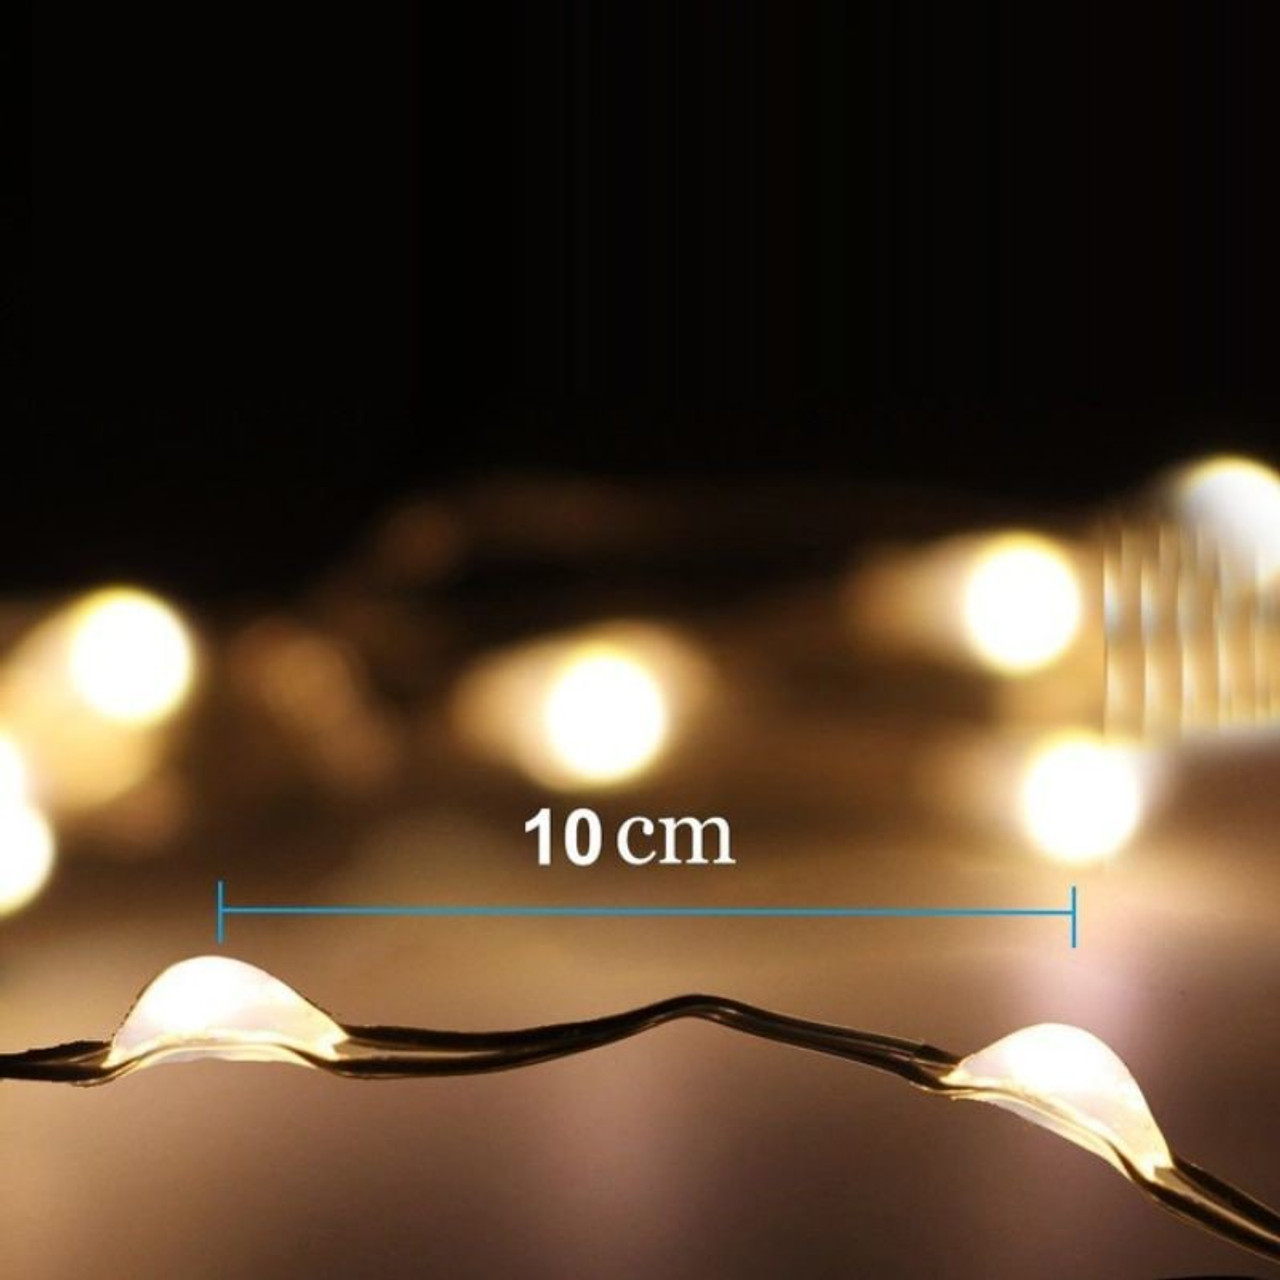 100 Led Outdoor String Lights For Christmas Decorations Light